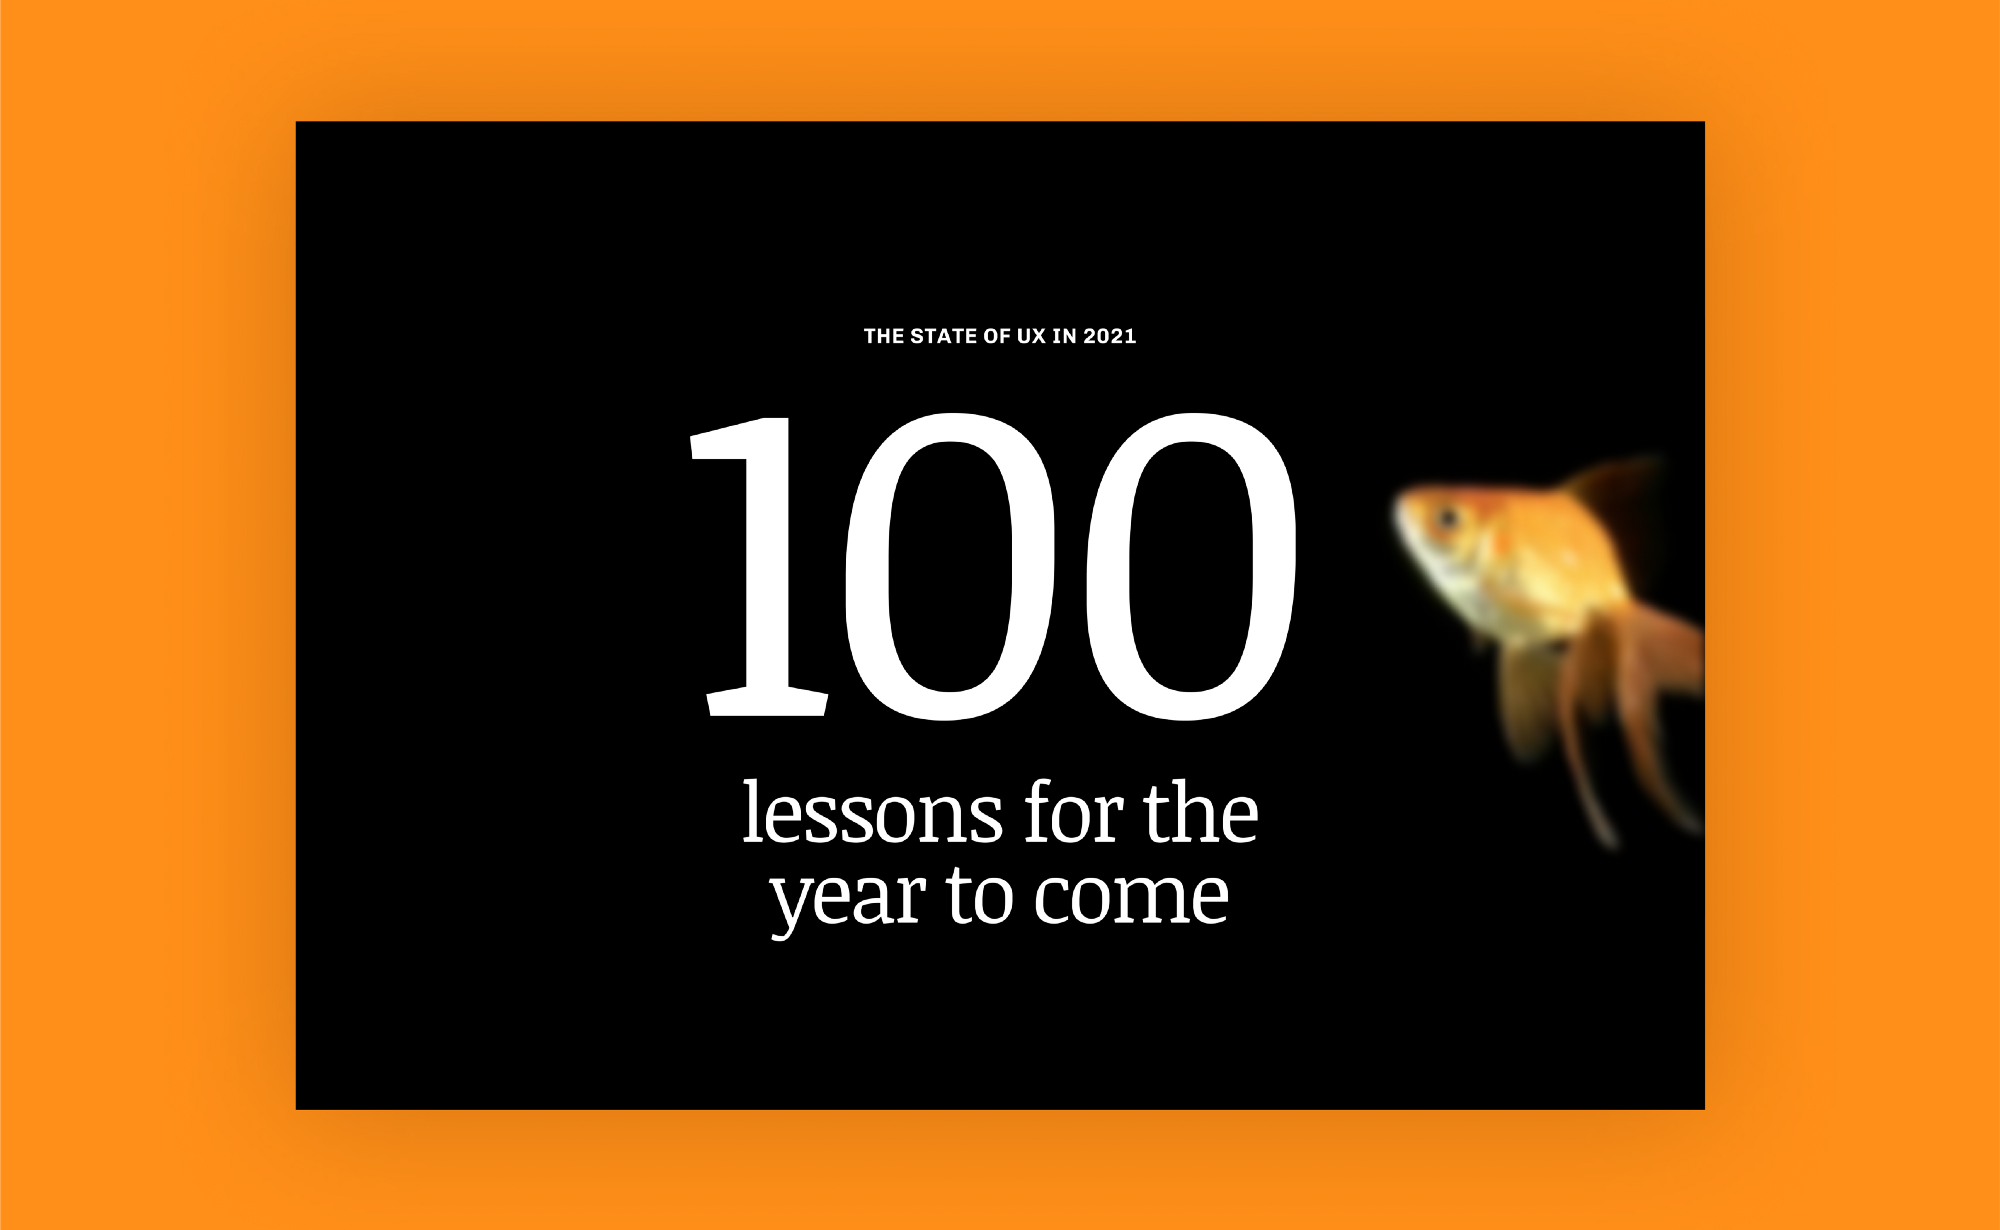 Screenshot of the State of UX website that reads 100 lessons for the year to come